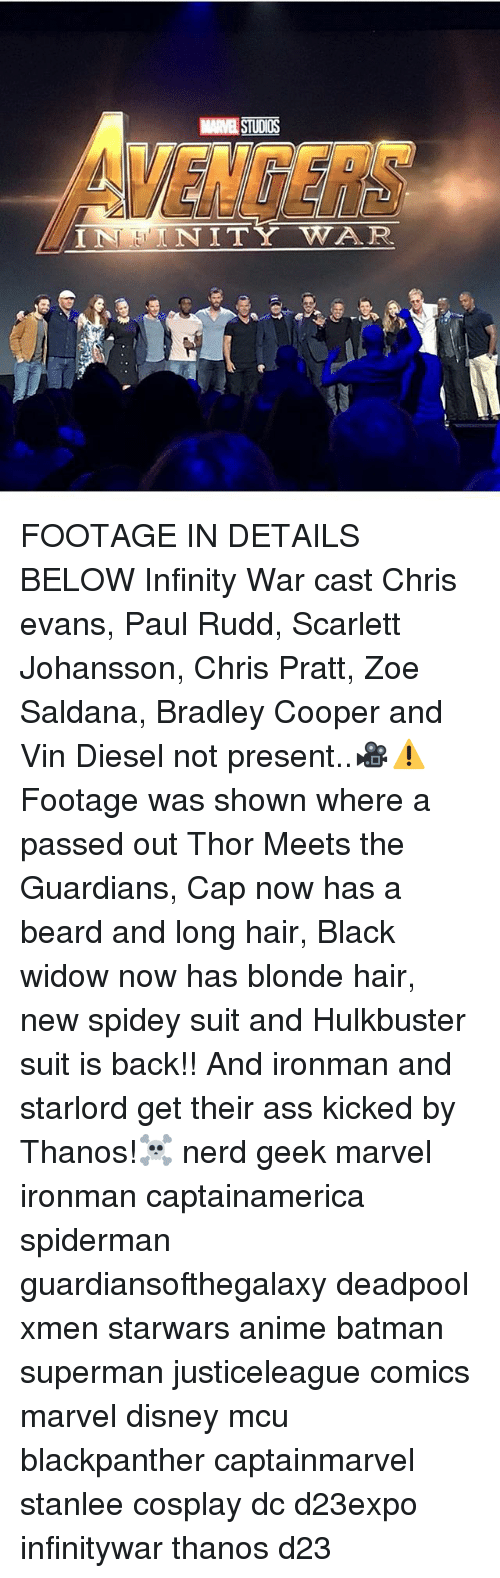 Anime, Batman, and Beard: MARVEL STUDIOS  VENGERS  NITY WAR FOOTAGE IN DETAILS BELOW Infinity War cast Chris evans, Paul Rudd, Scarlett Johansson, Chris Pratt, Zoe Saldana, Bradley Cooper and Vin Diesel not present..🎥⚠Footage was shown where a passed out Thor Meets the Guardians, Cap now has a beard and long hair, Black widow now has blonde hair, new spidey suit and Hulkbuster suit is back!! And ironman and starlord get their ass kicked by Thanos!☠ nerd geek marvel ironman captainamerica spiderman guardiansofthegalaxy deadpool xmen starwars anime batman superman justiceleague comics marvel disney mcu blackpanther captainmarvel stanlee cosplay dc d23expo infinitywar thanos d23